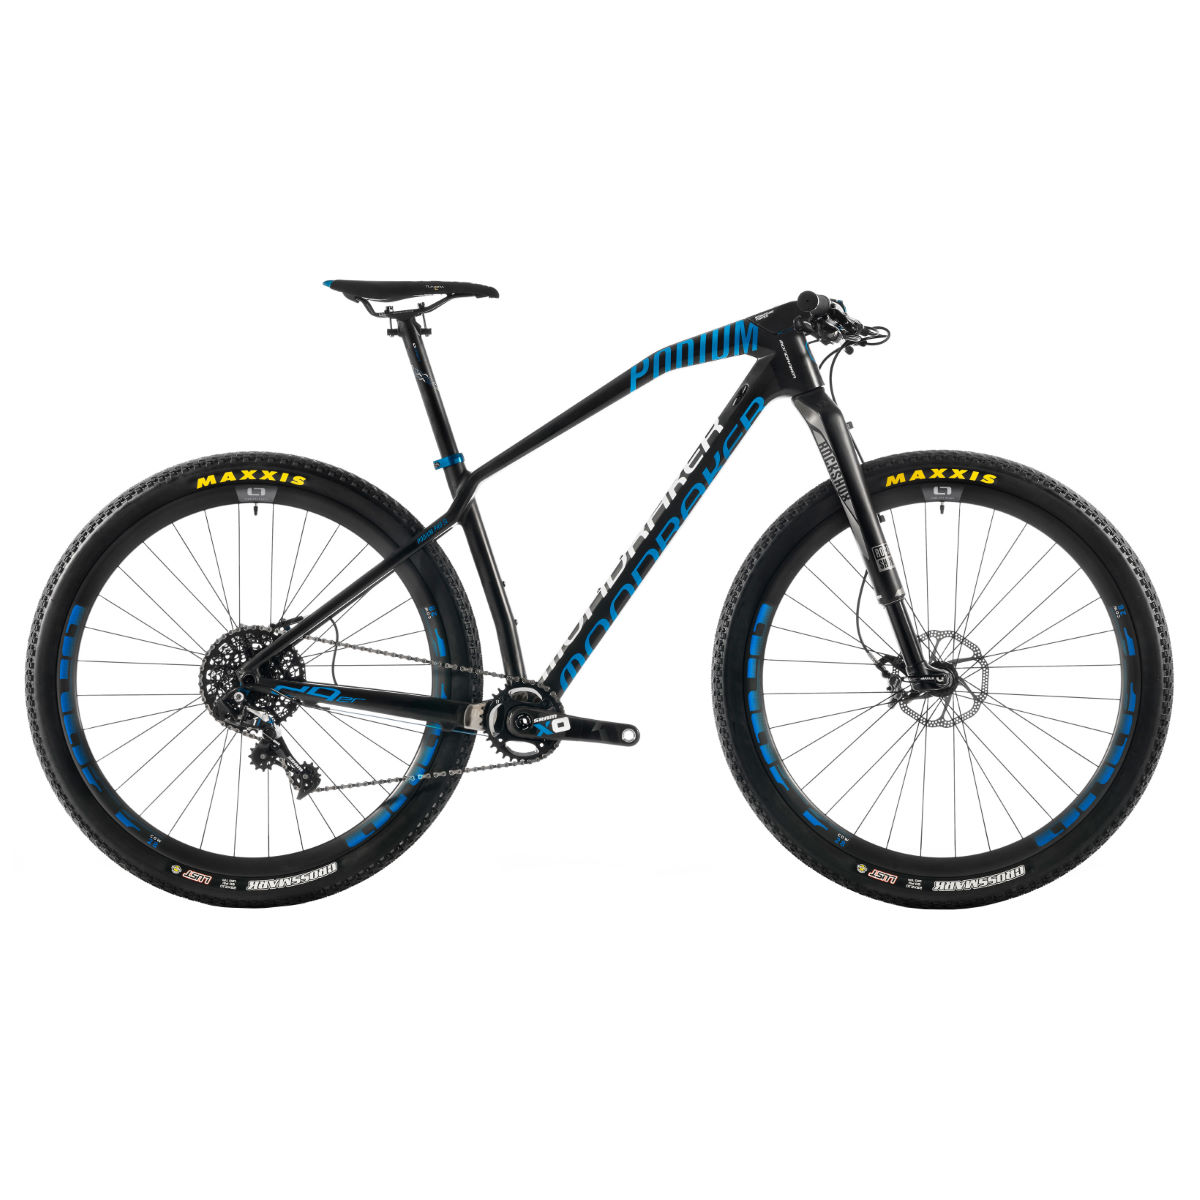 Mondraker Podium Carbon Pro SL (2015) - Medium Black